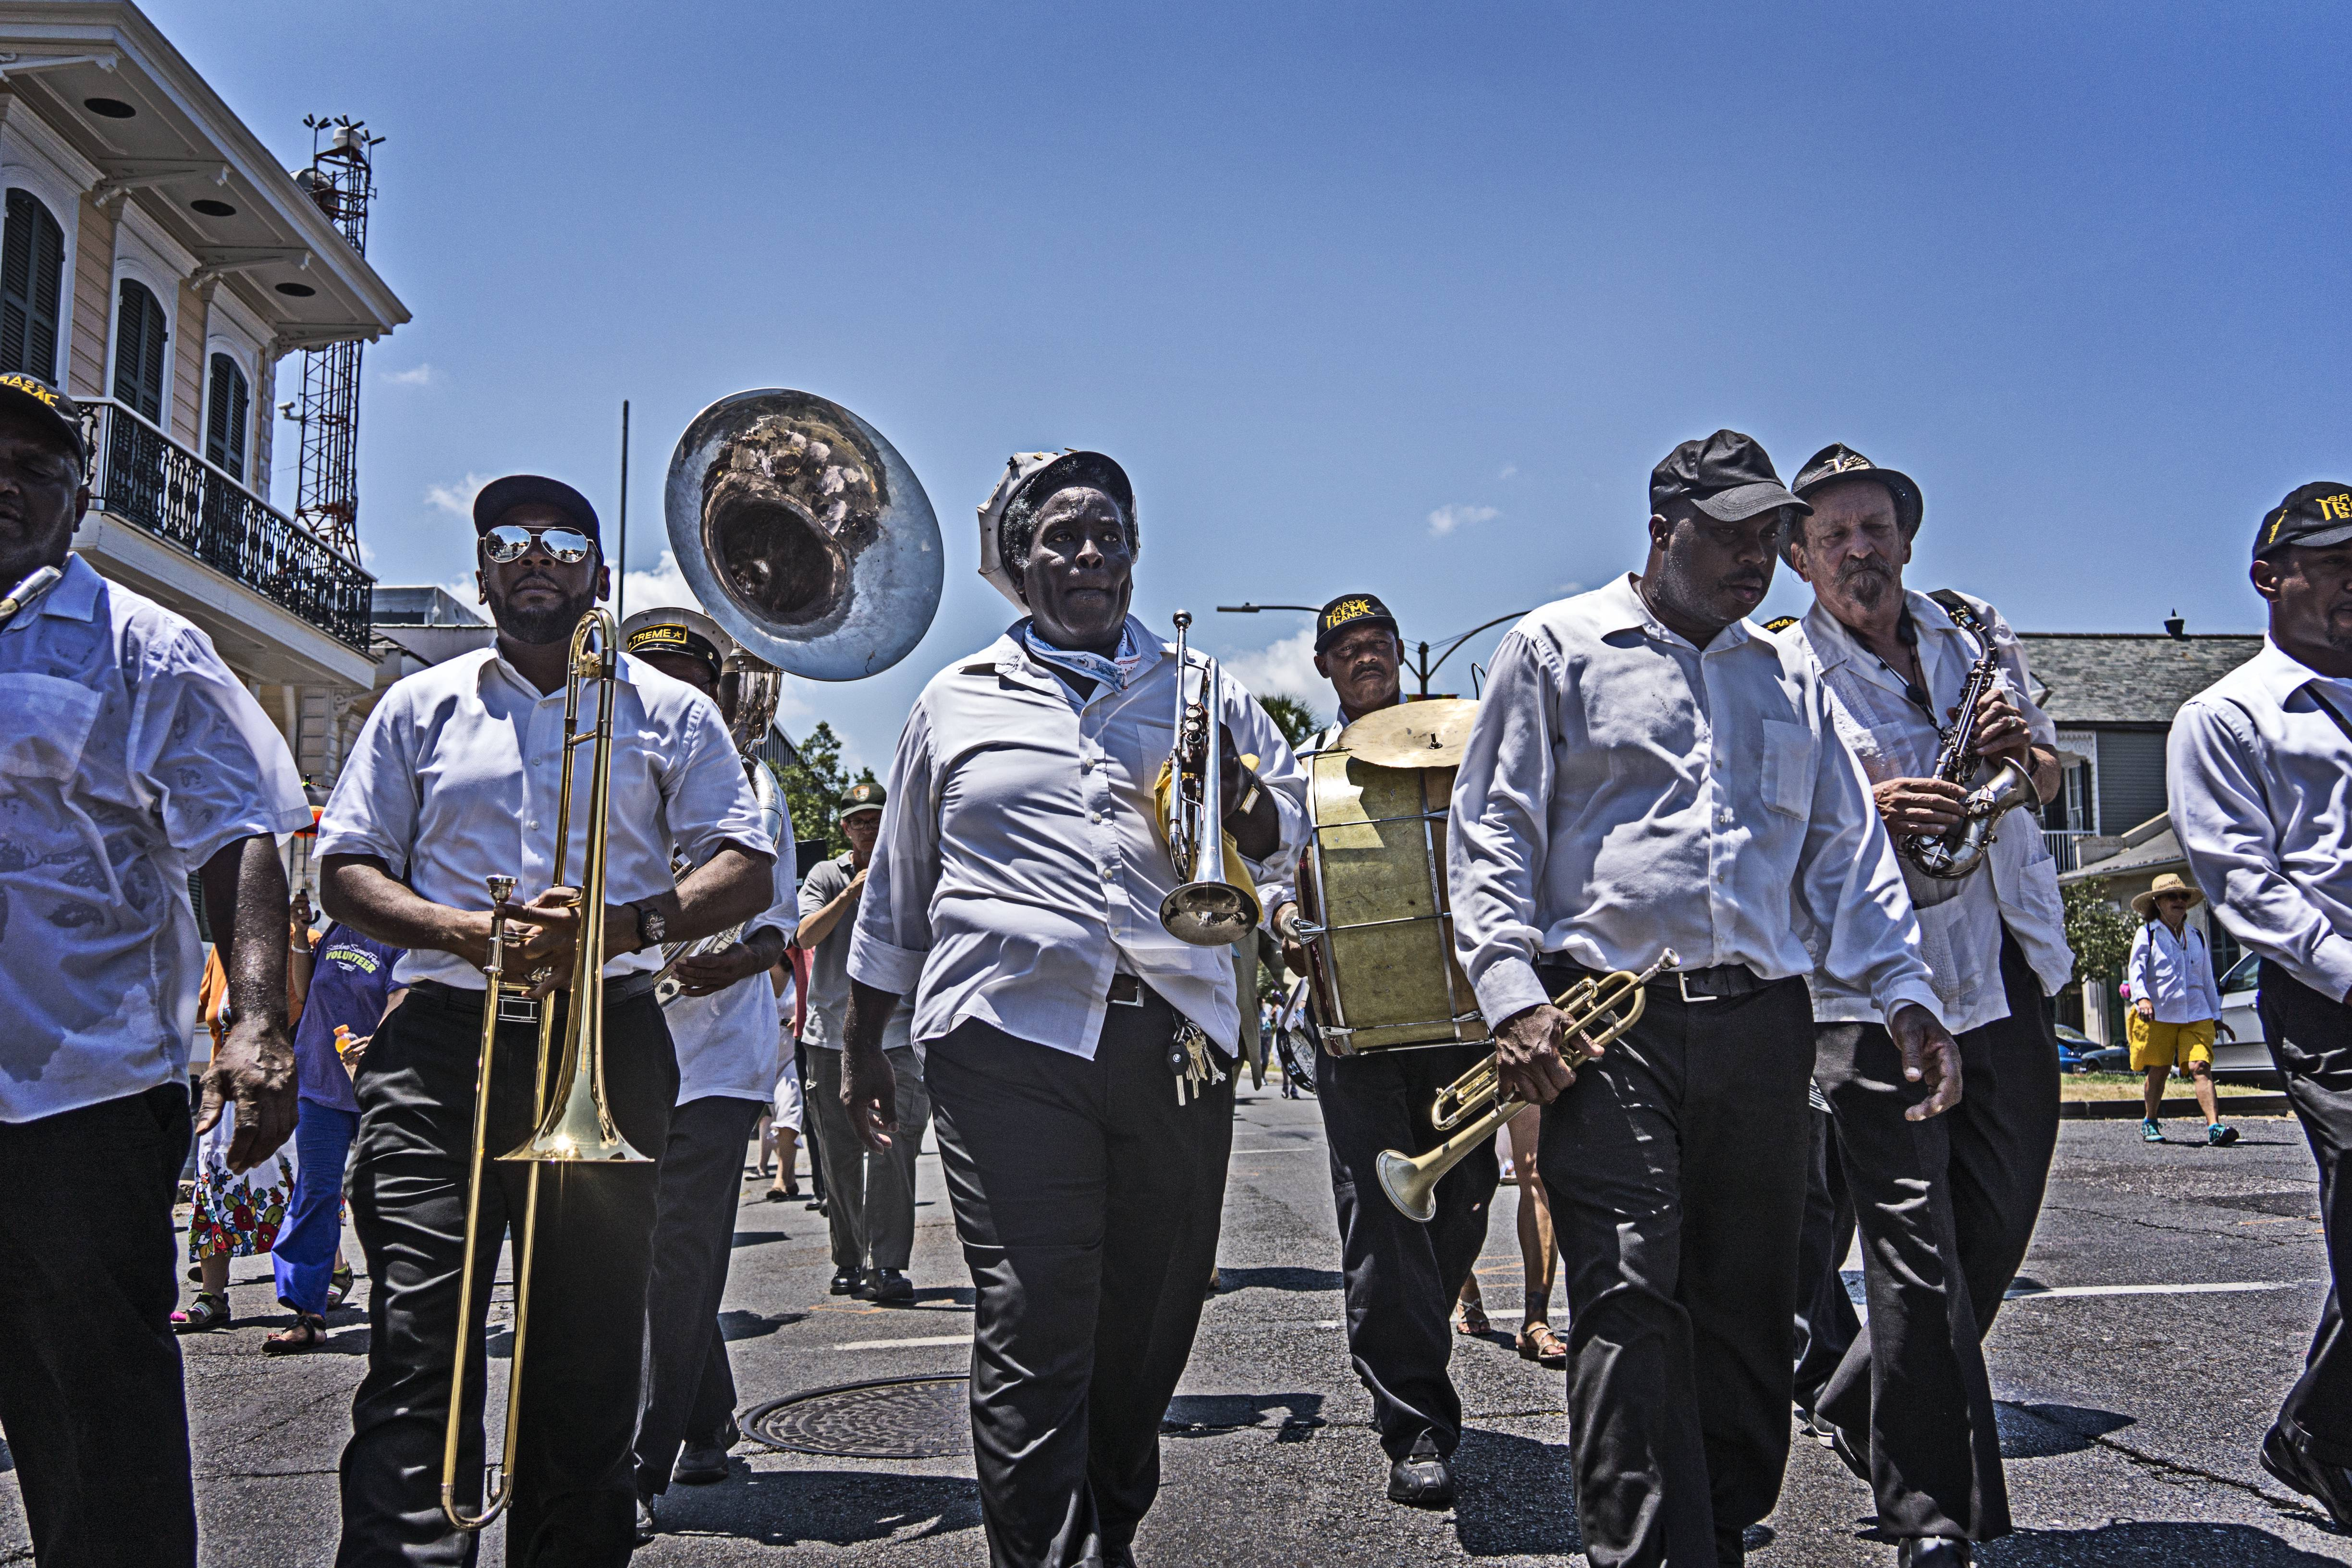 After a long walk the Treme  Brass Band looked tired and hot but still had a long way to go.